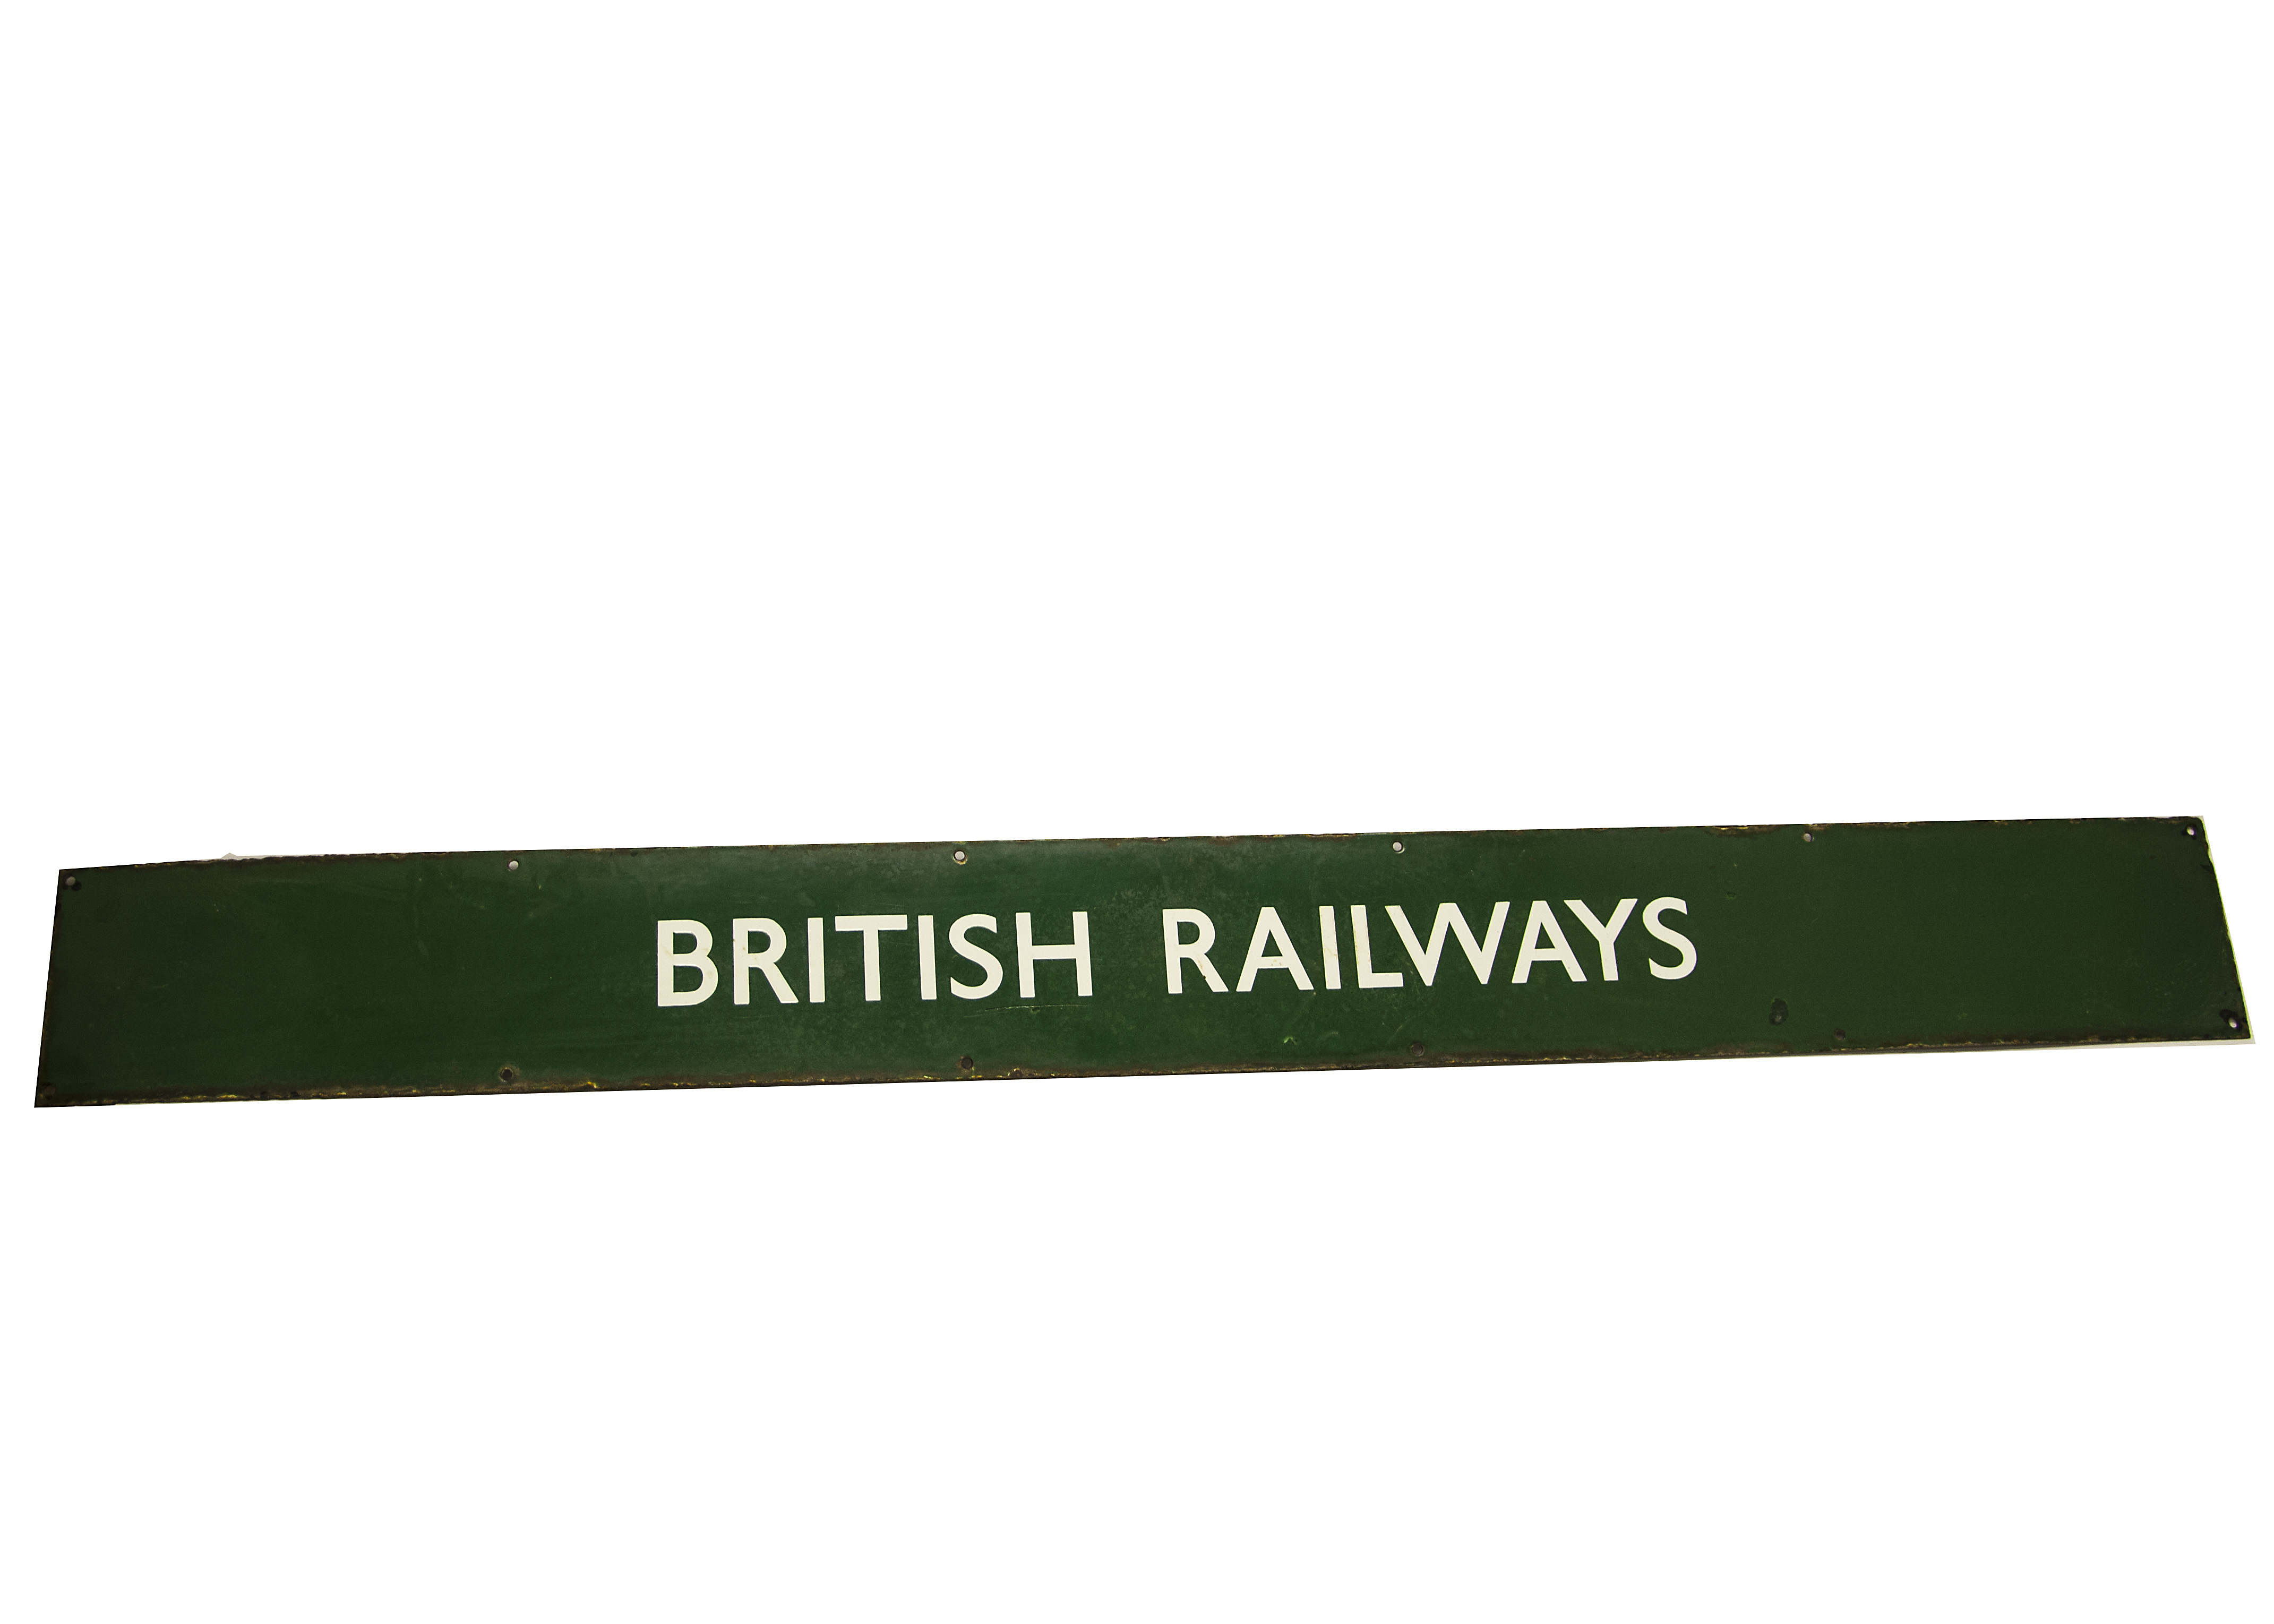 Lot 746 - To The Trains and British Railway Signs, a duo of BR Southern enamelled signs, both white text on